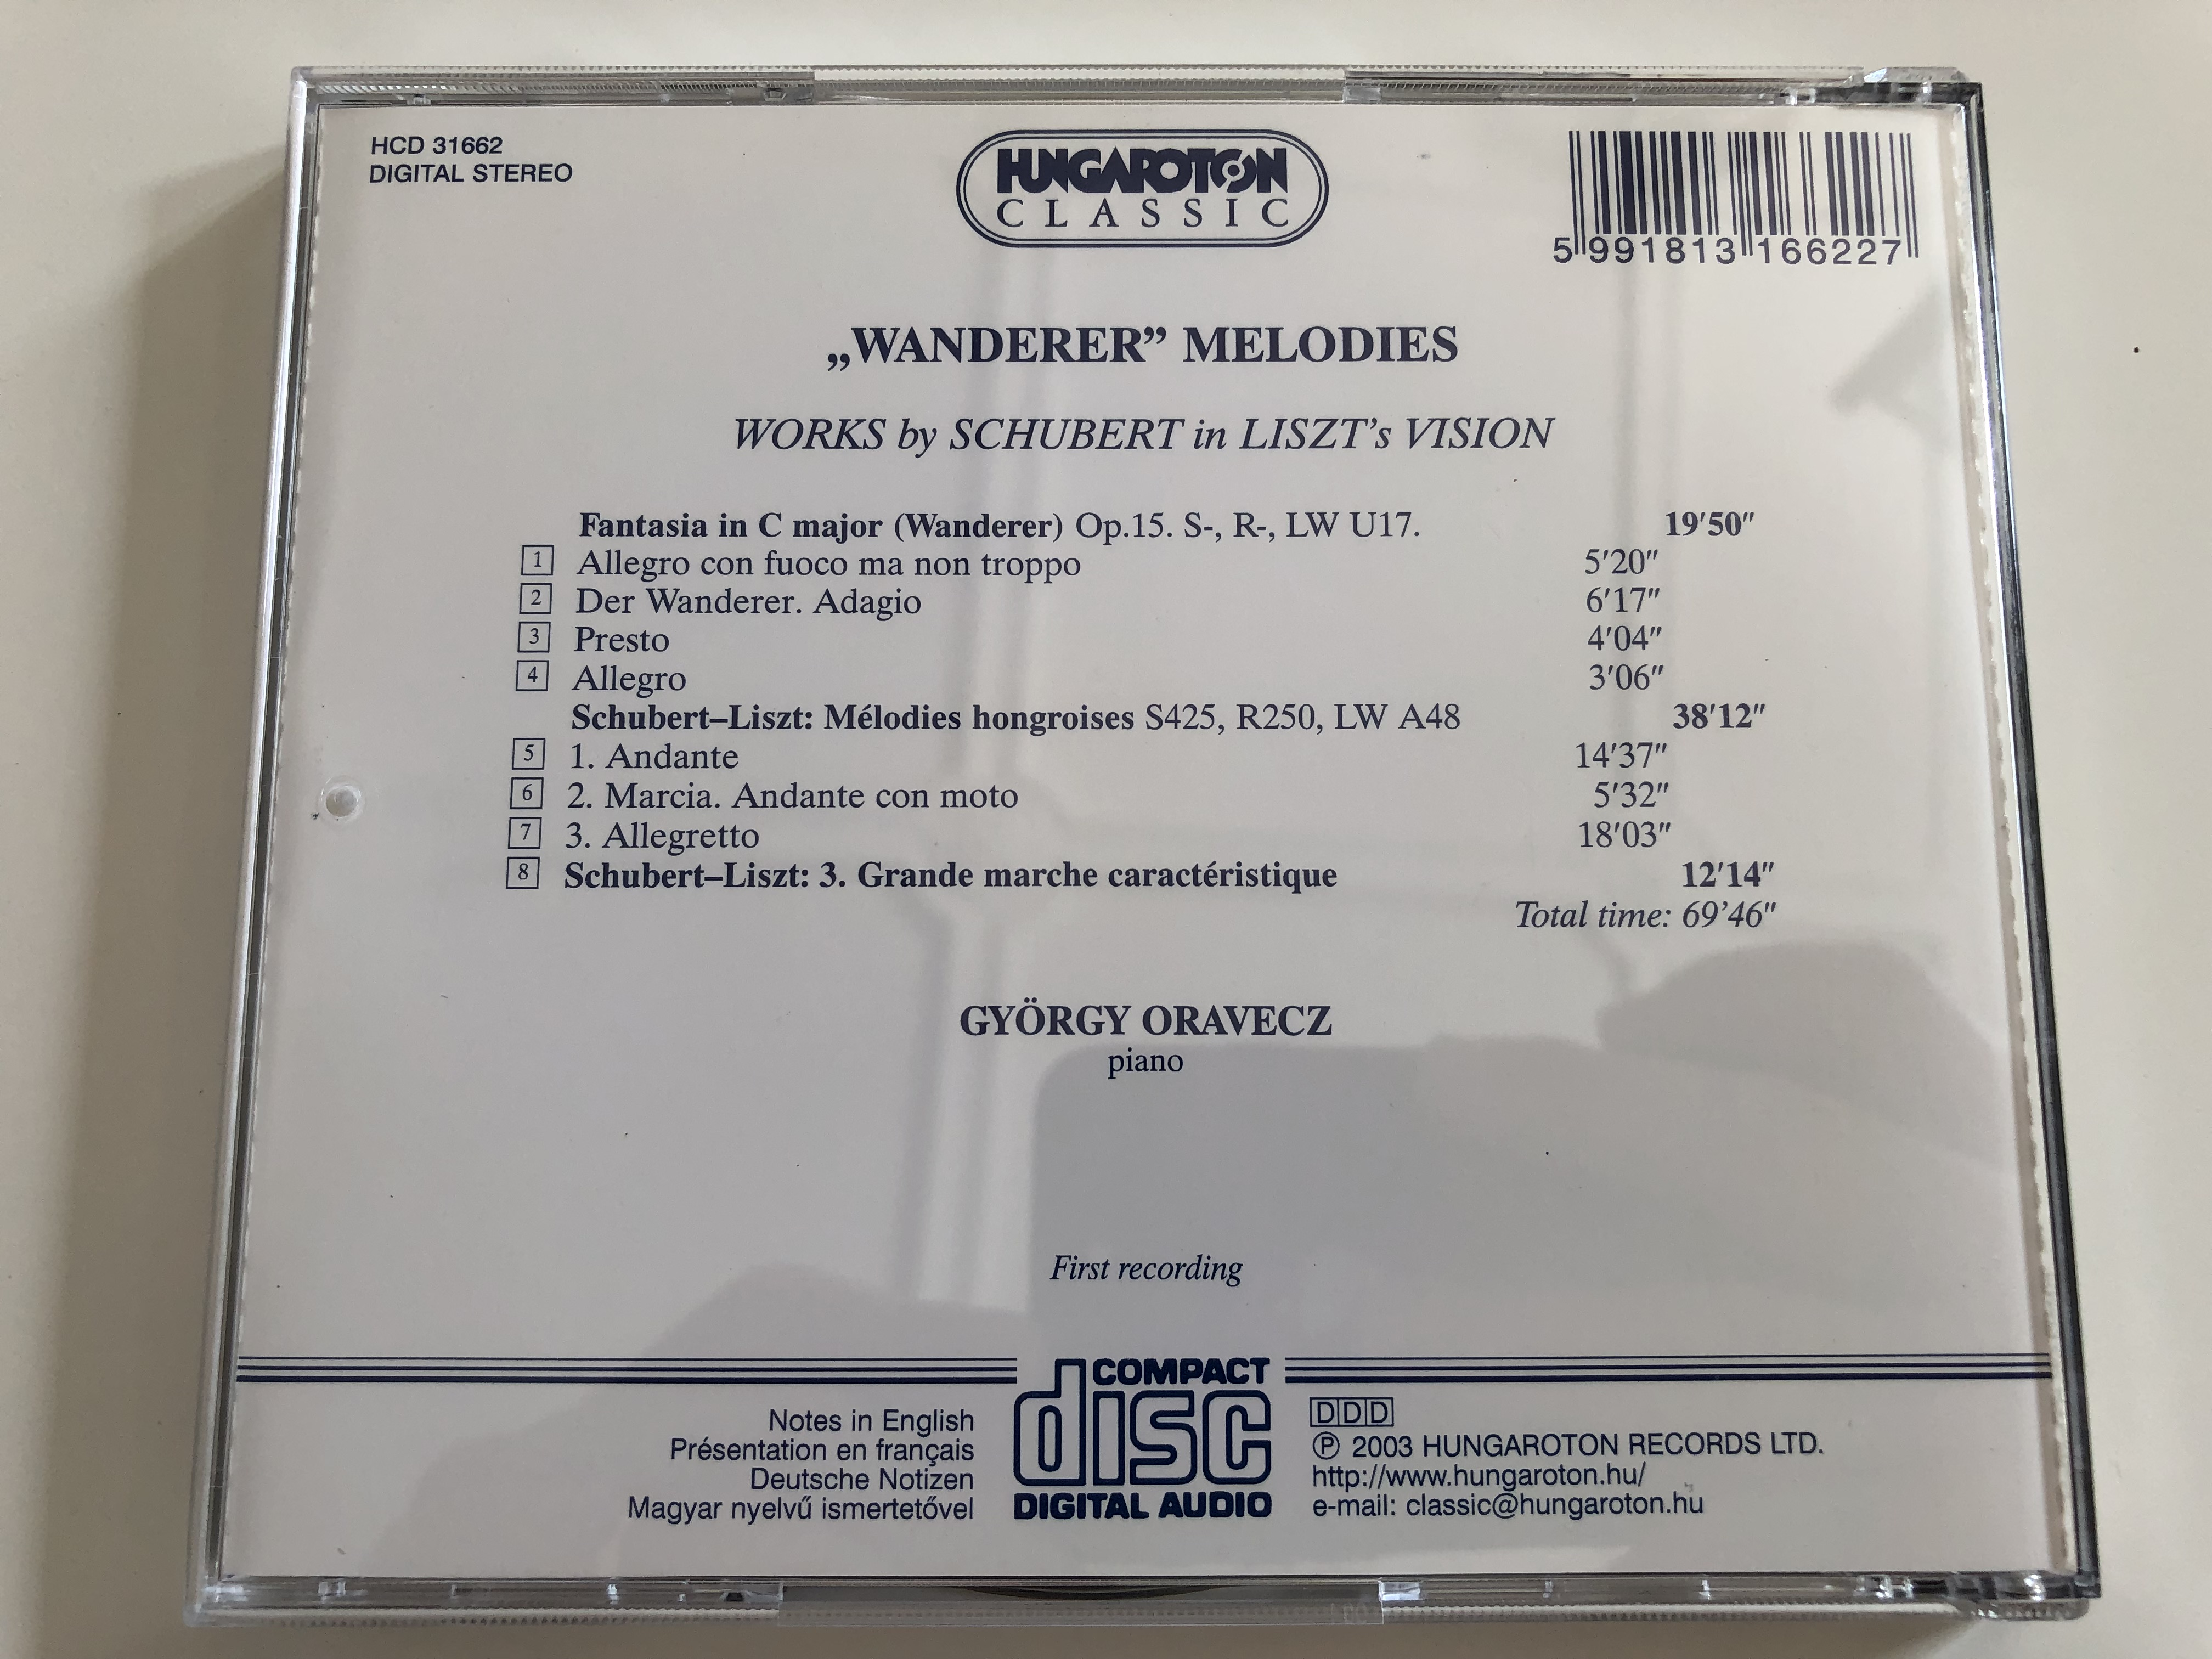 wanderer-melodies-works-by-schubert-in-liszt-s-vision-gy-rgy-oravecz-piano-fantasia-in-c-major-m-lodies-hongroises-grande-marche-caract-ristique-hungaroton-classic-audio-cd-2003-hcd-31662-6-.jpg